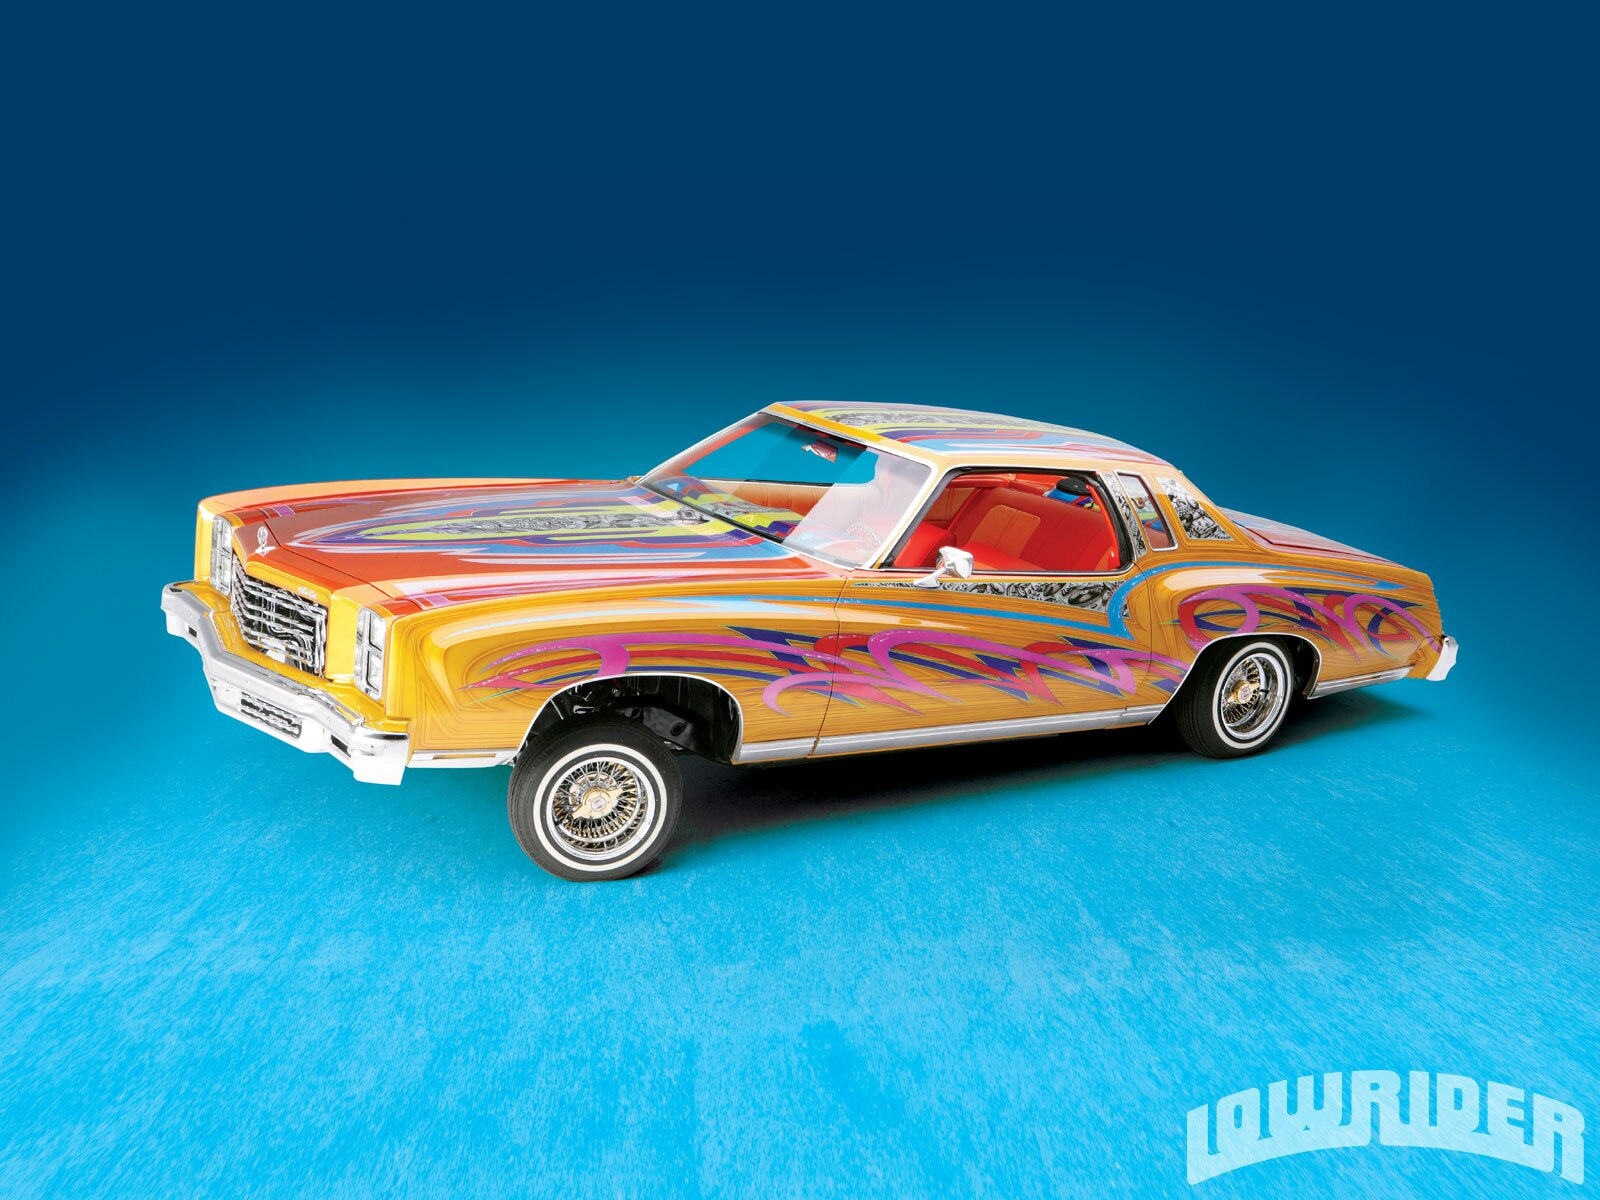 lrmp-1008-17-o-1977-chevrolet-monte-carlo-side-view3